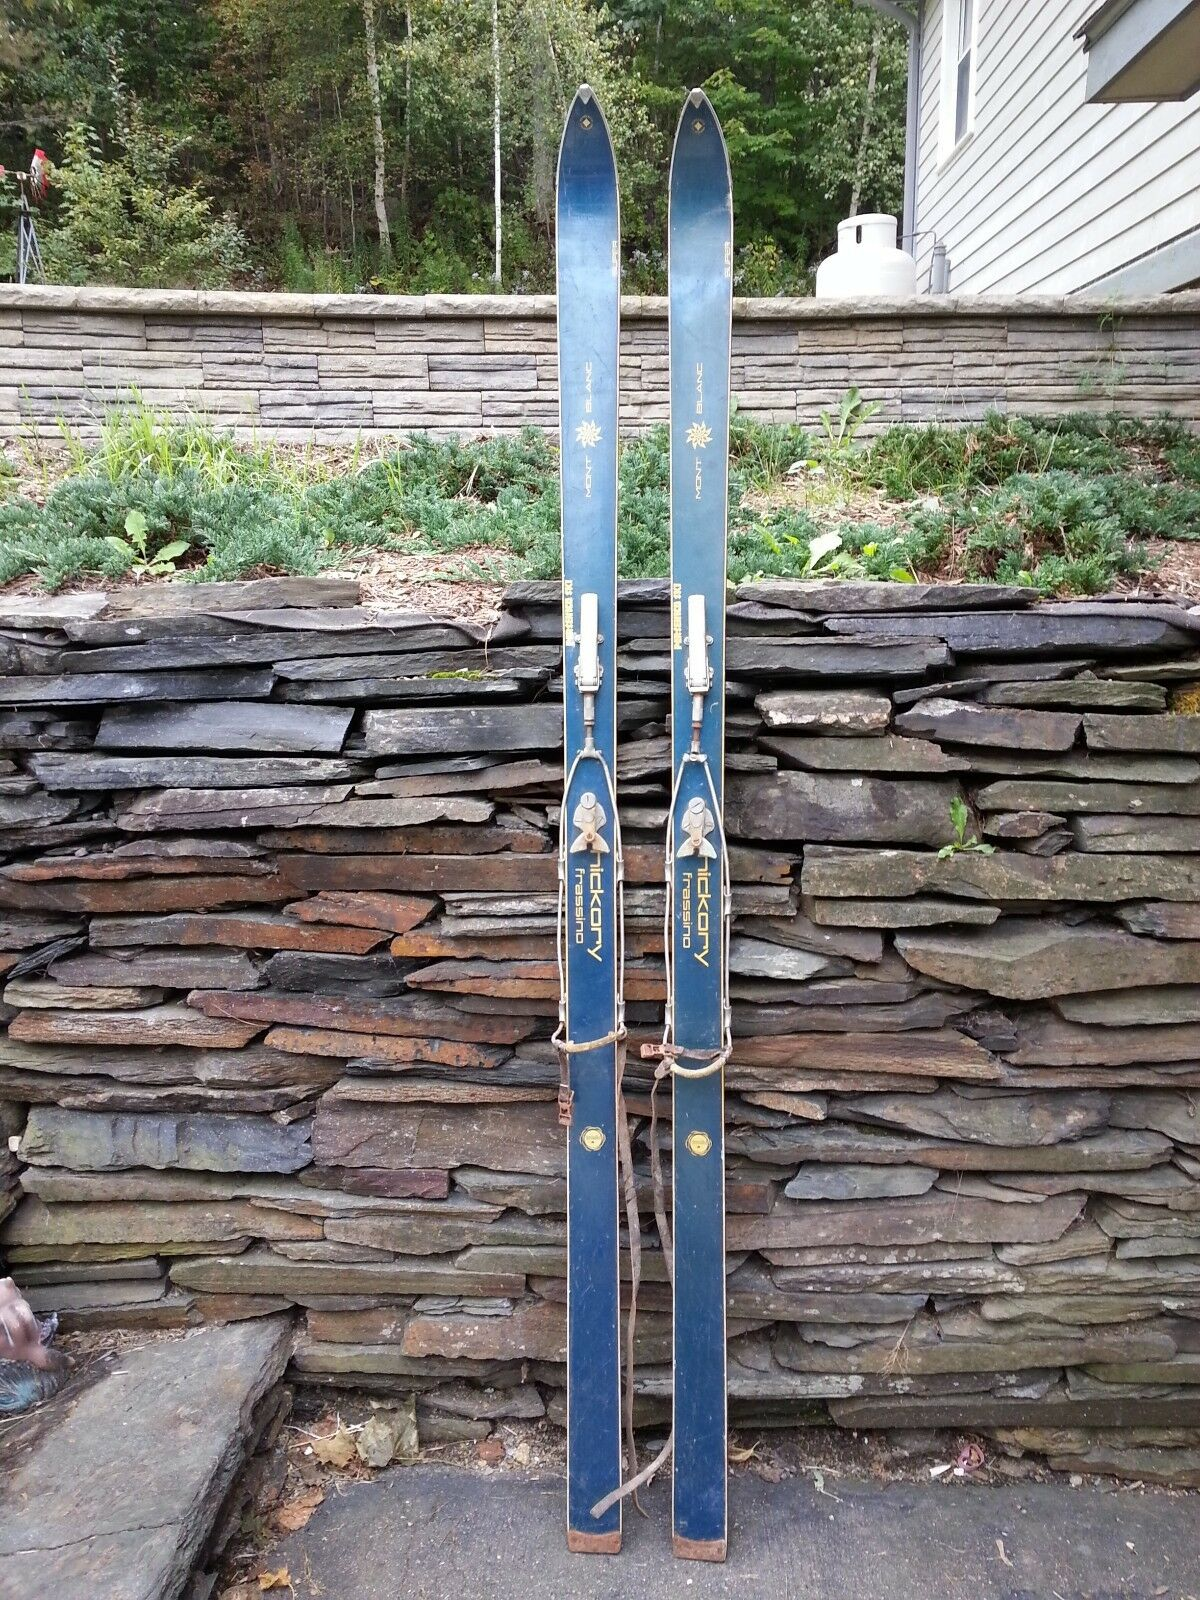 OLD Set of Wooden 75  Long blueE Skis signed MONT white with Metal Bindings